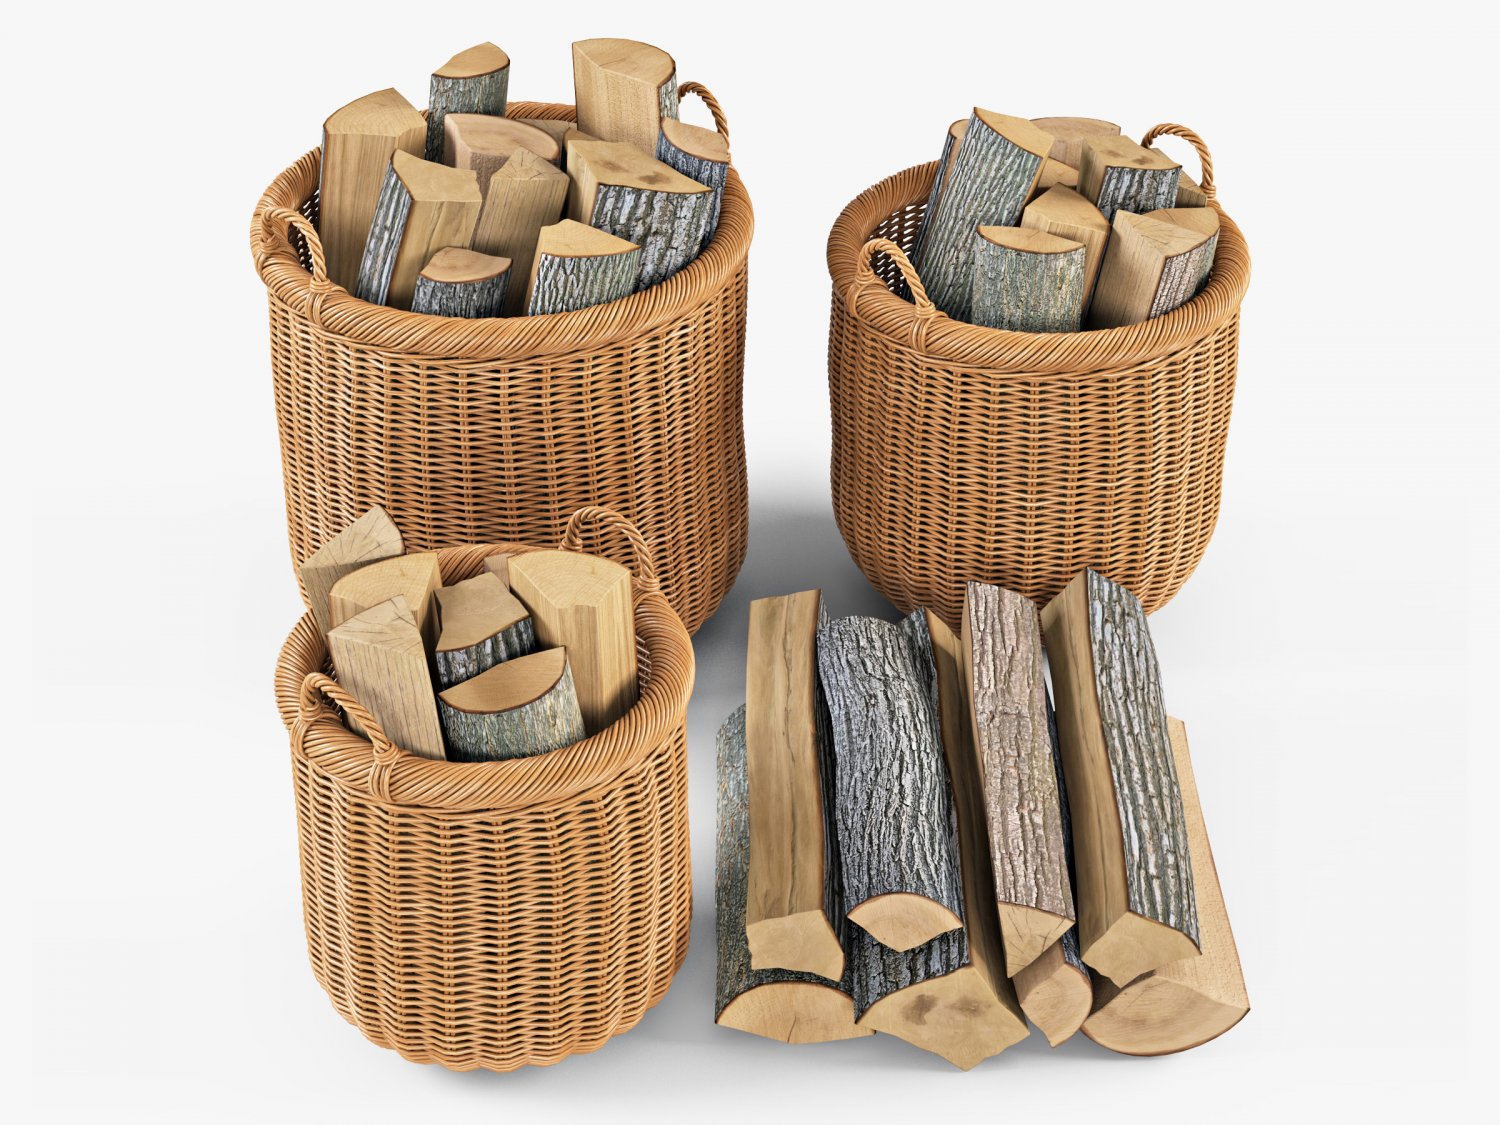 Wicker Basket 07 Toasted Oat Color With Firewood 3d Model In Household  Items 3dexport